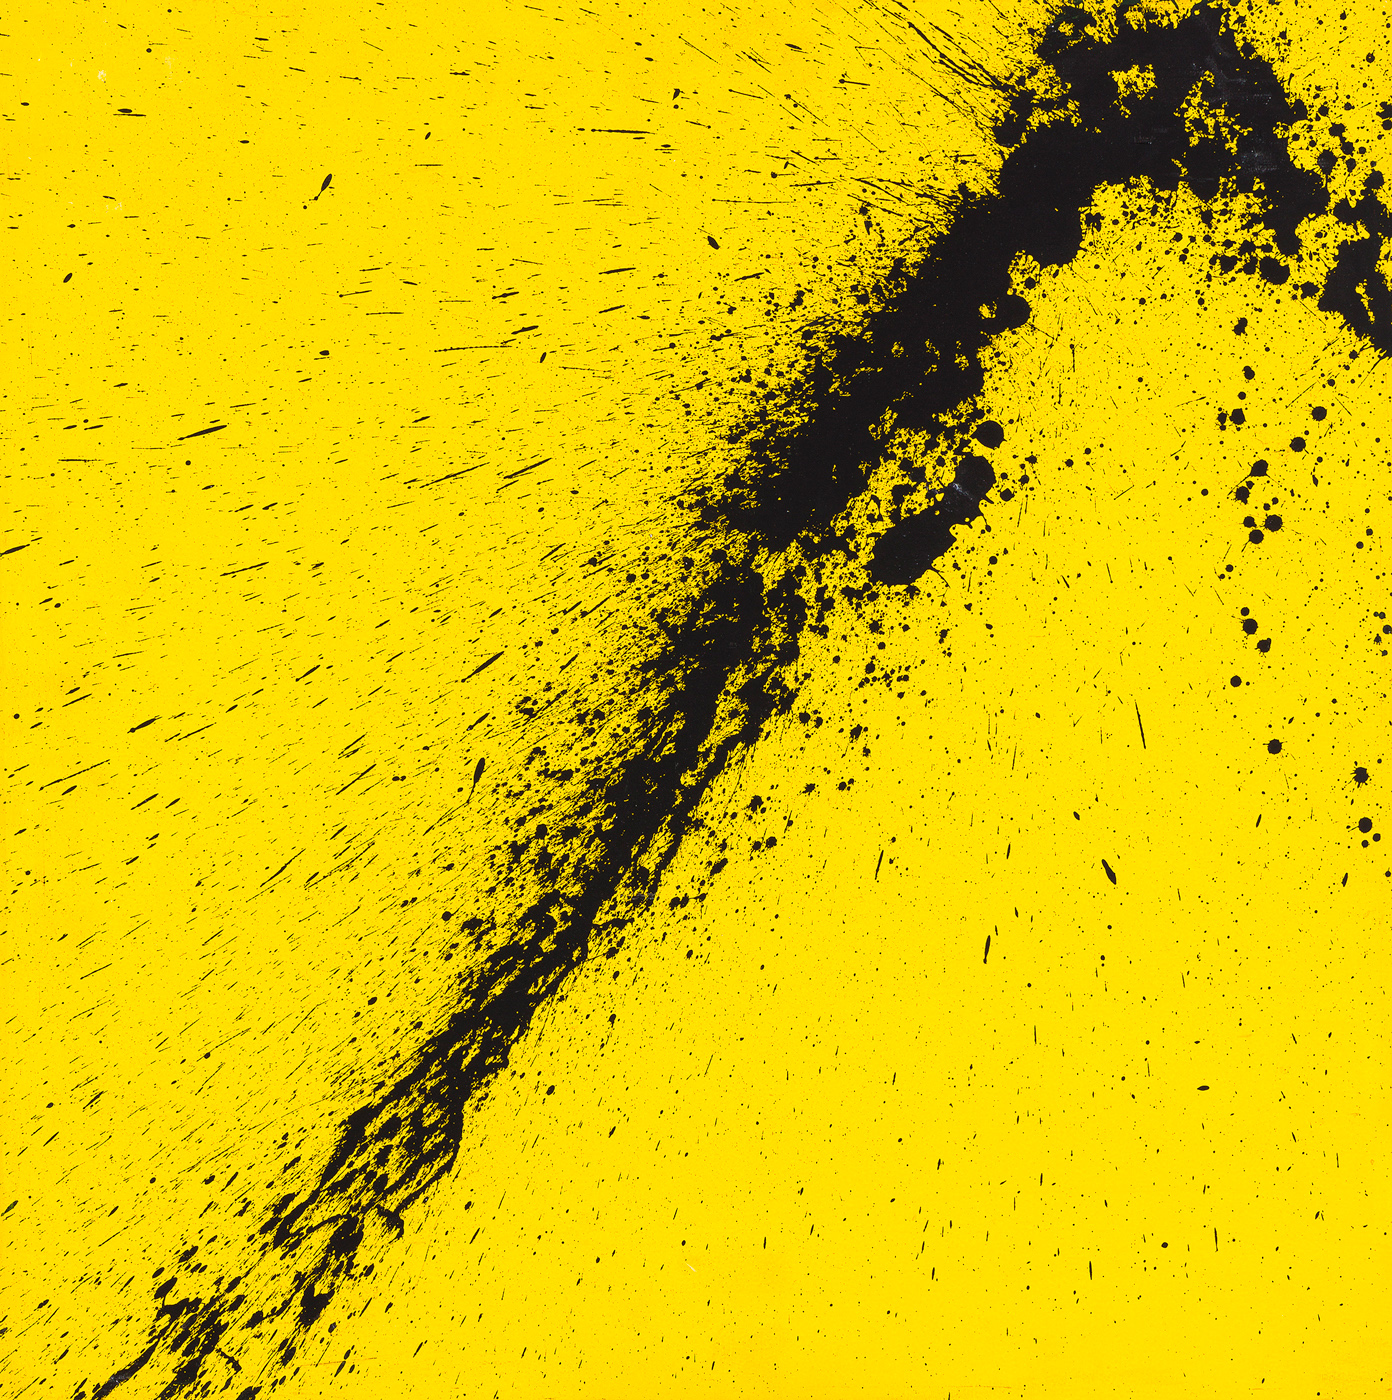 CHANDA TUN (1980) - Yellow and black, 2011